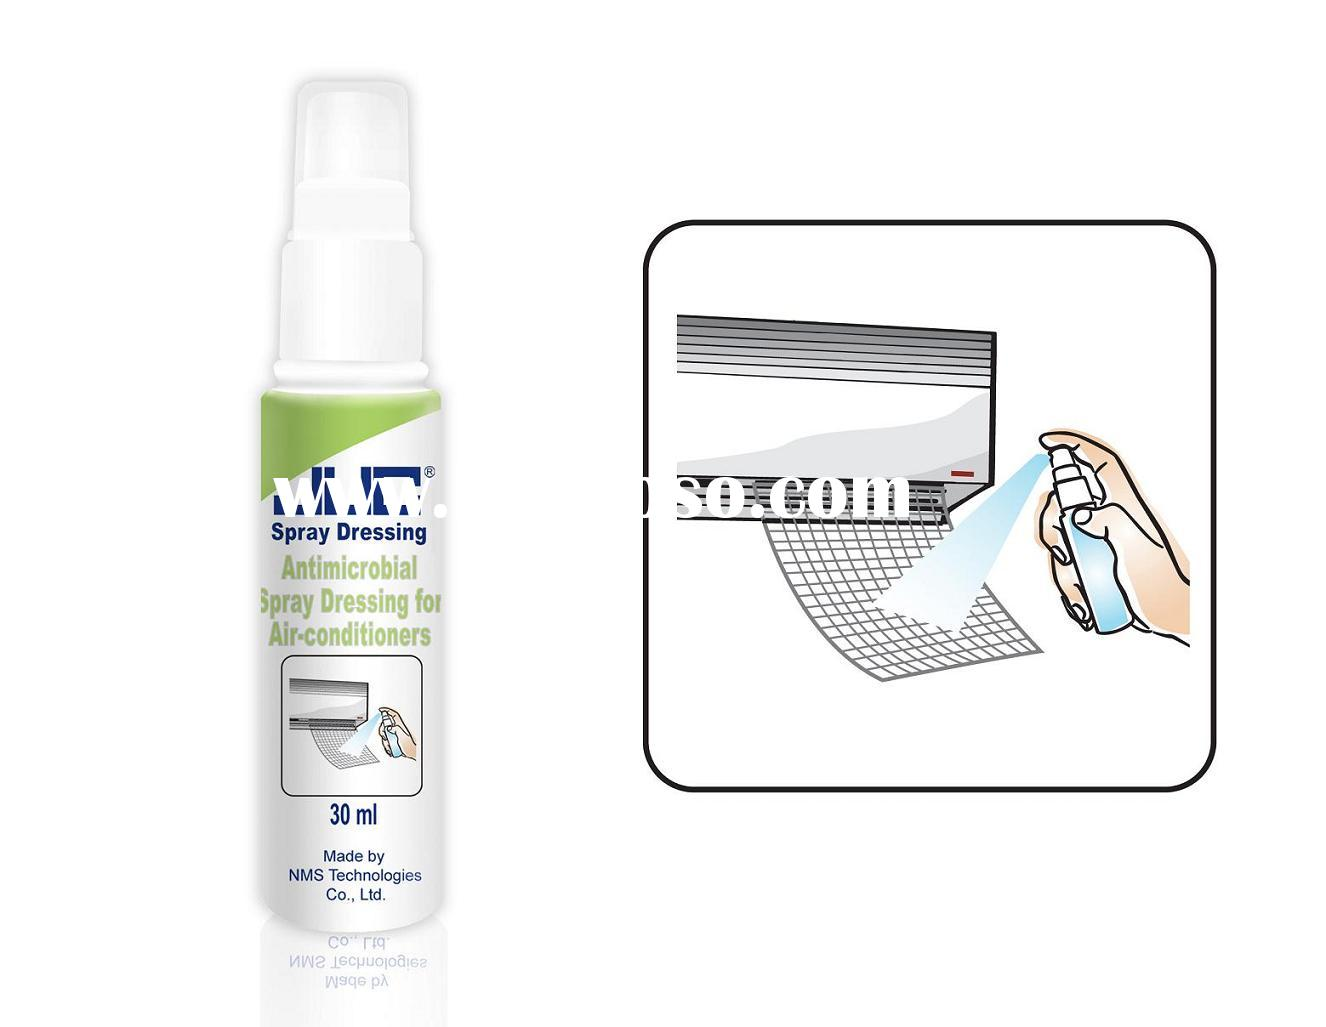 Air-conditioner Antimicrobial Spray